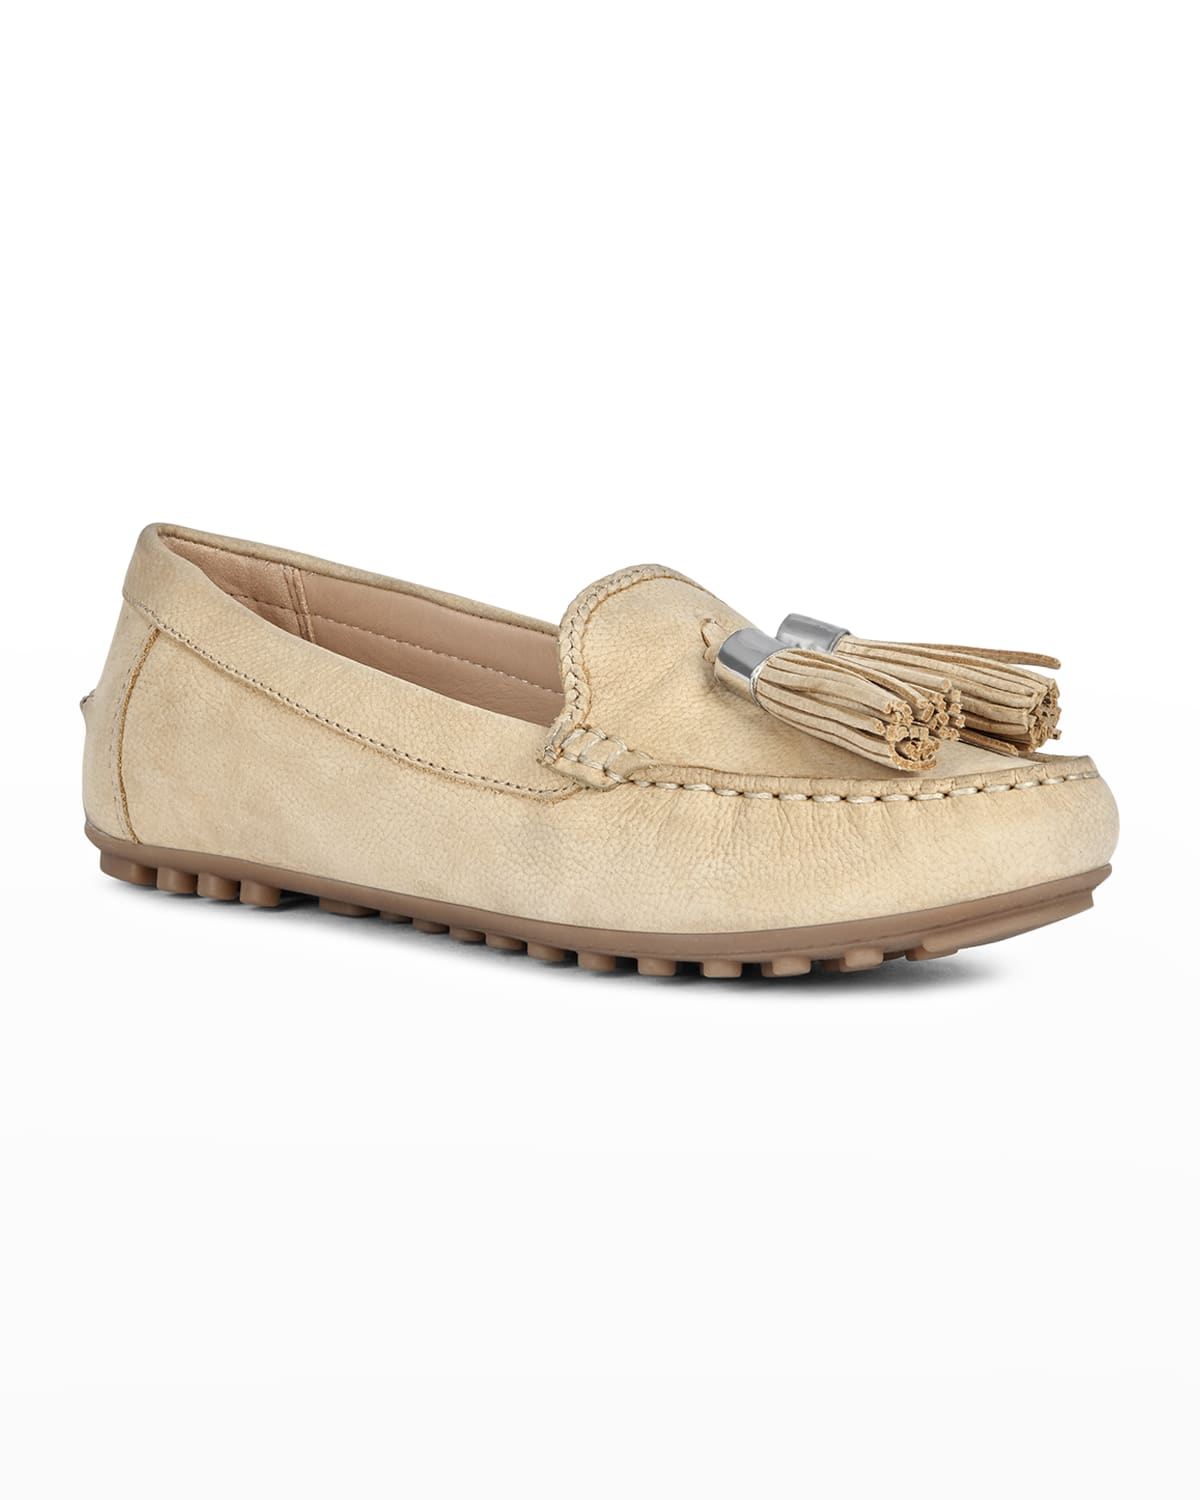 Leather Tassel Driver Loafers